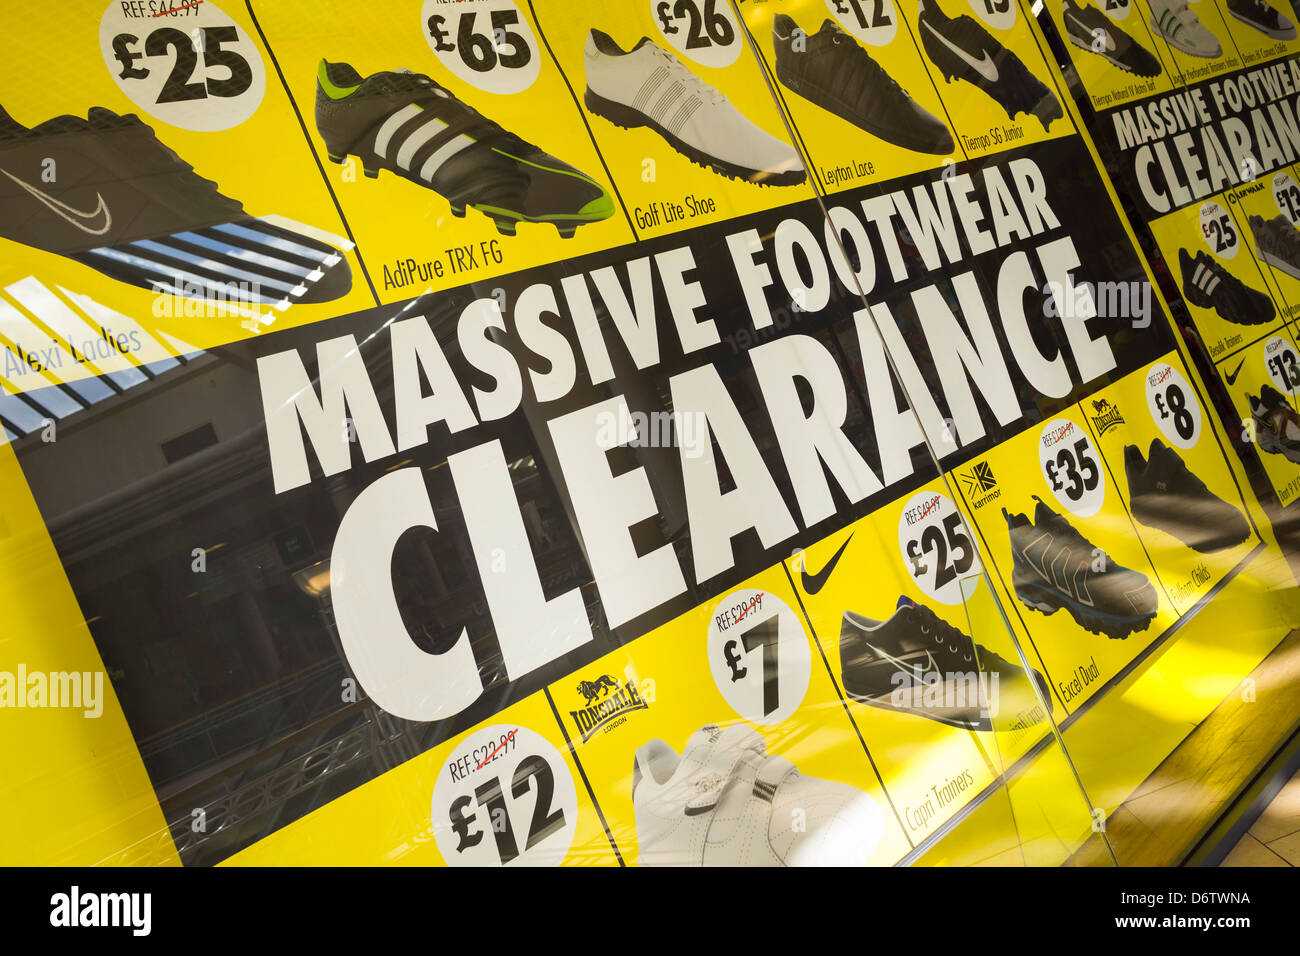 Massive footwear clearance sale. - Stock Image